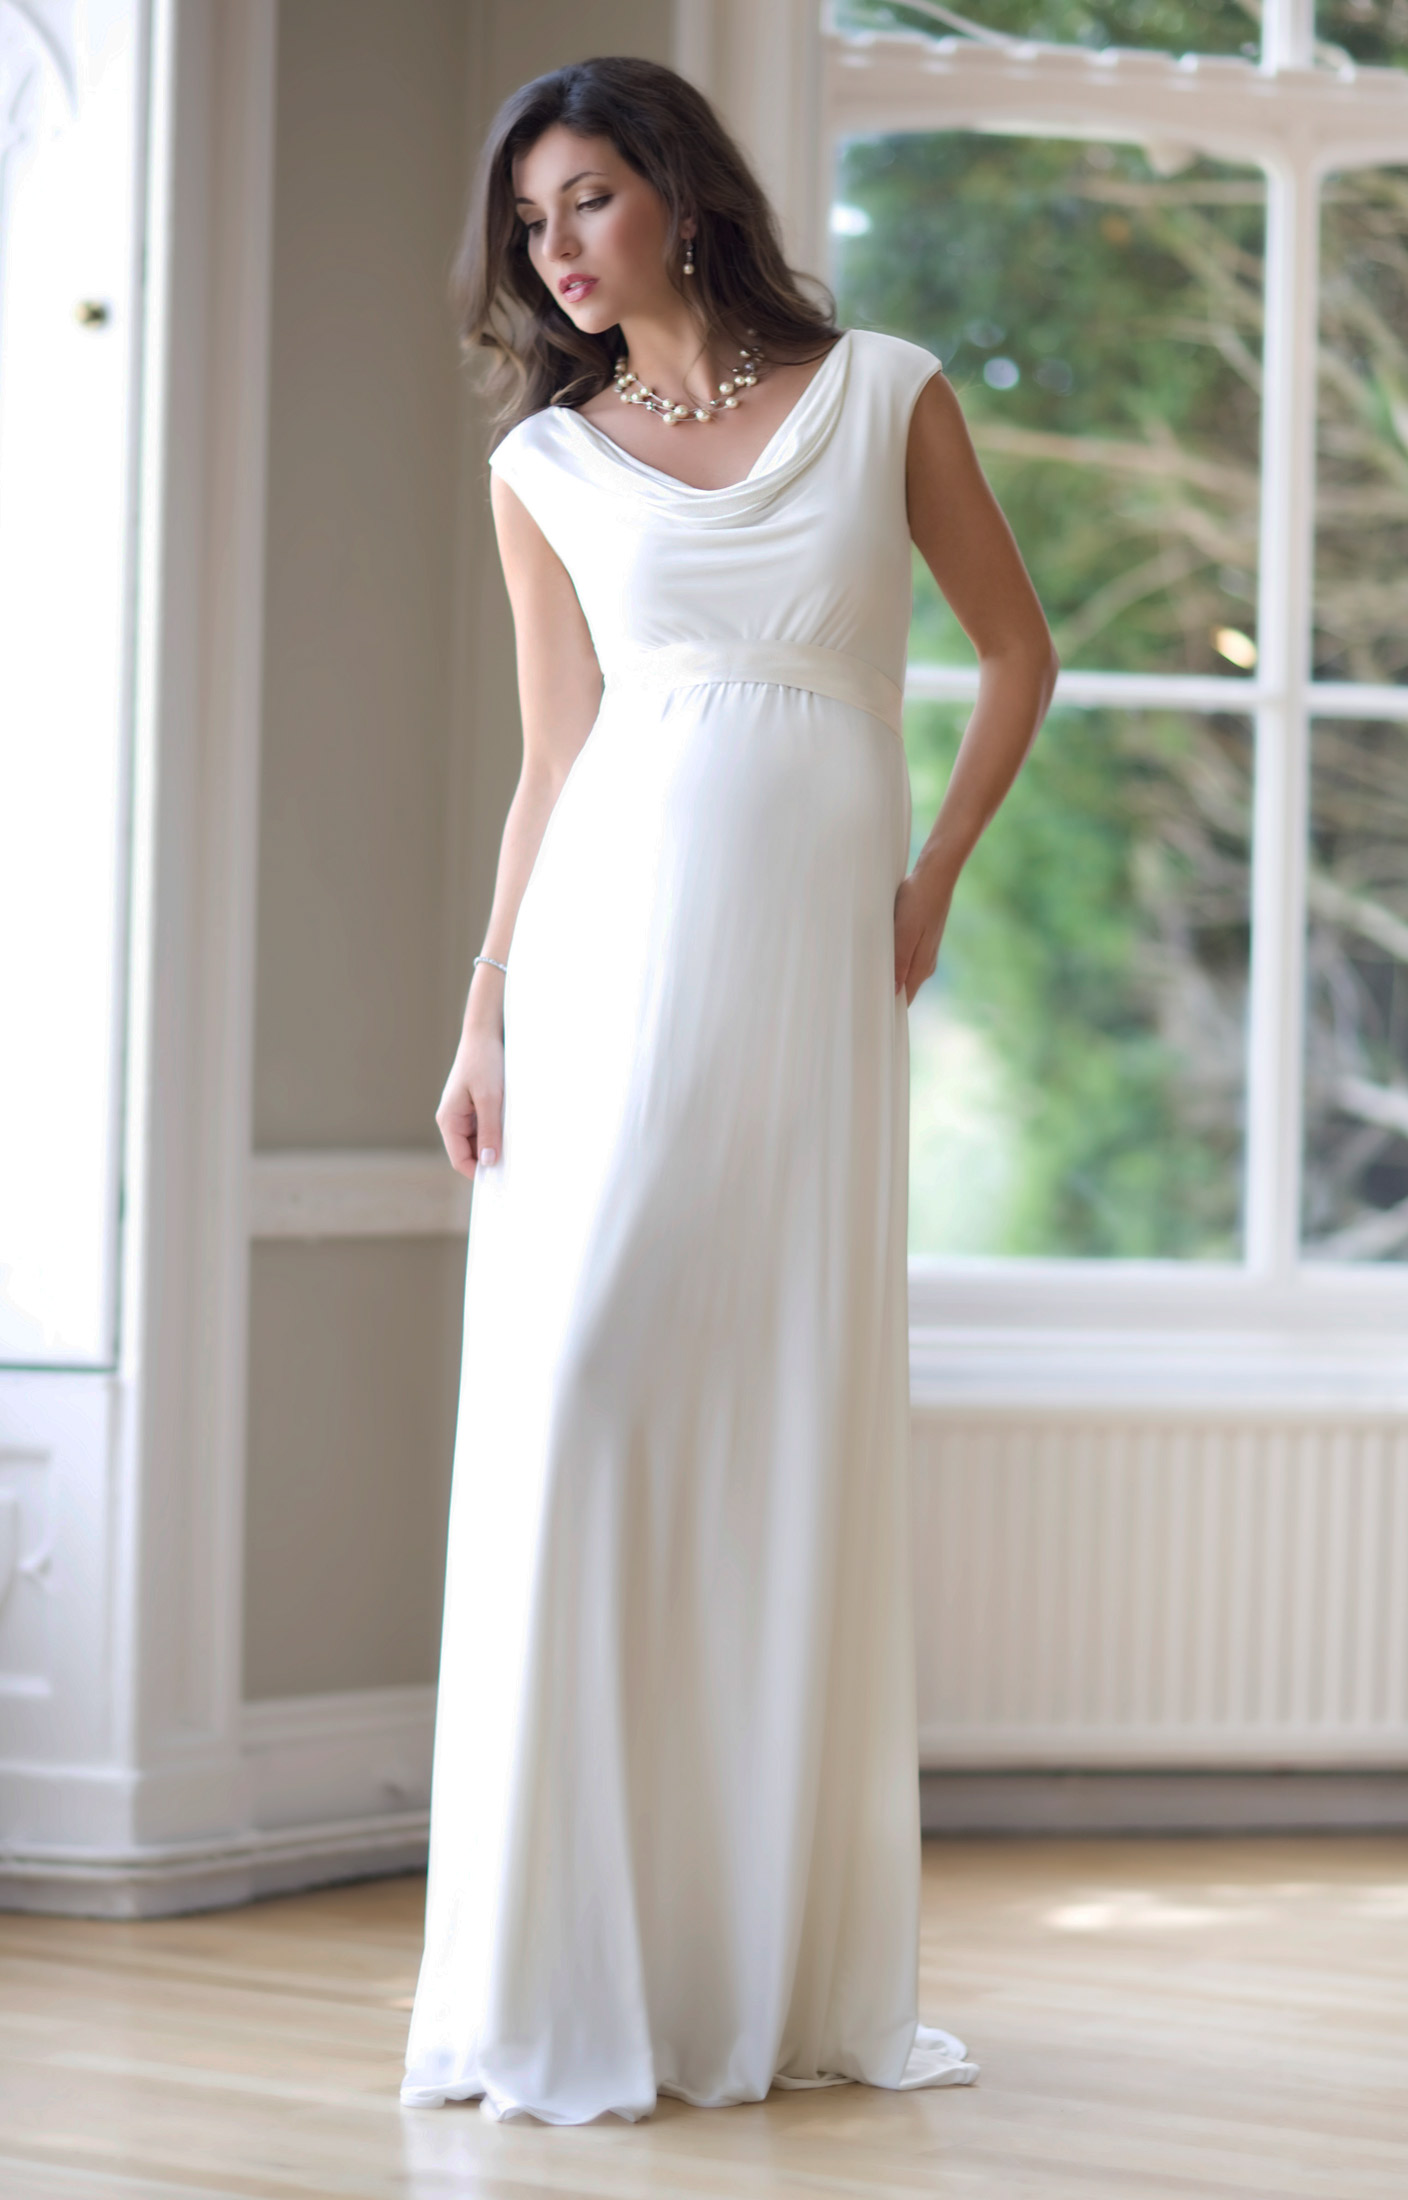 Brilliant Guide To Buying Wedding Dresses For Pregnant Women - Real Photo Pictures | Exquisite Womenu0026#39;s ...